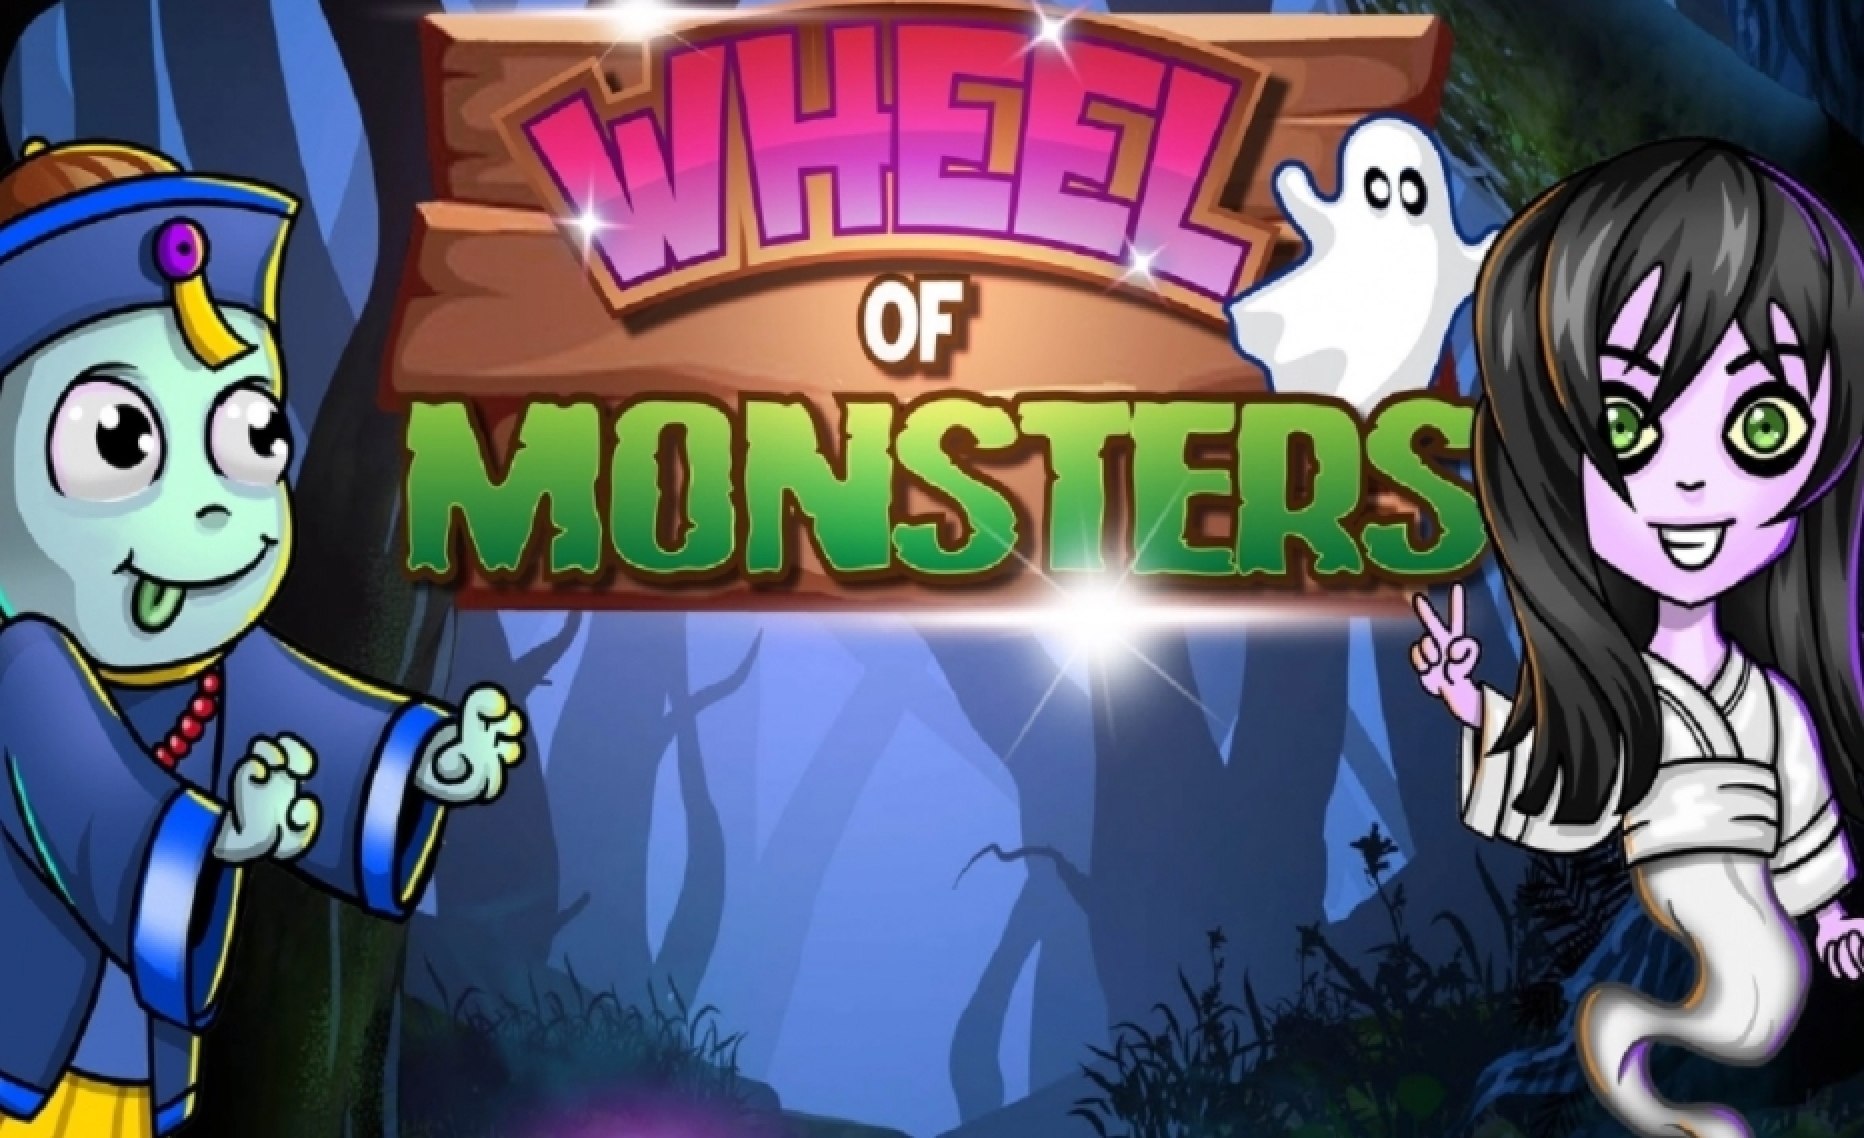 Reels in Wheel of Monsters Slot Game by Asylum Labs Inc.